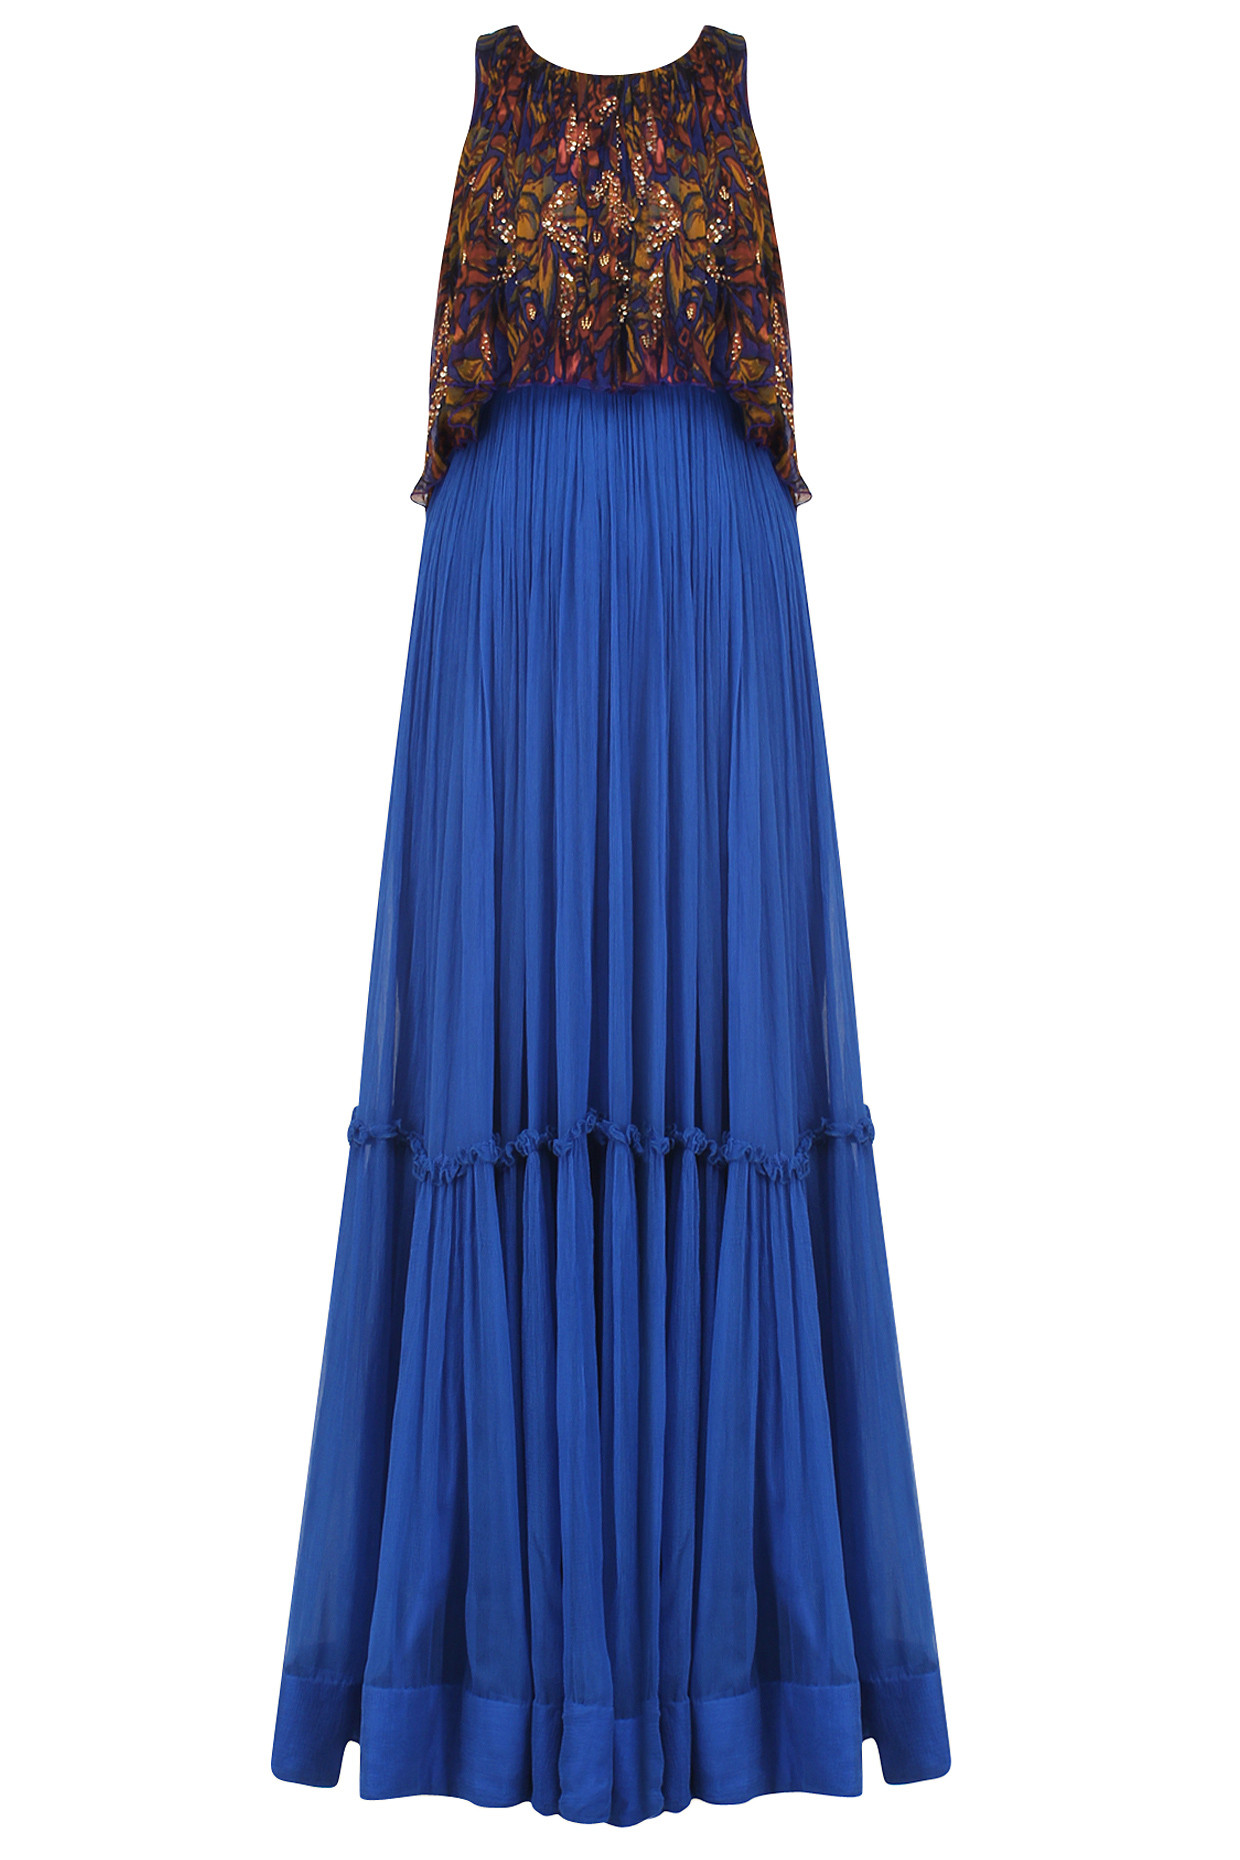 Blue Tiered Rapid Print Sequinned Gown by Pallavi Jaipur